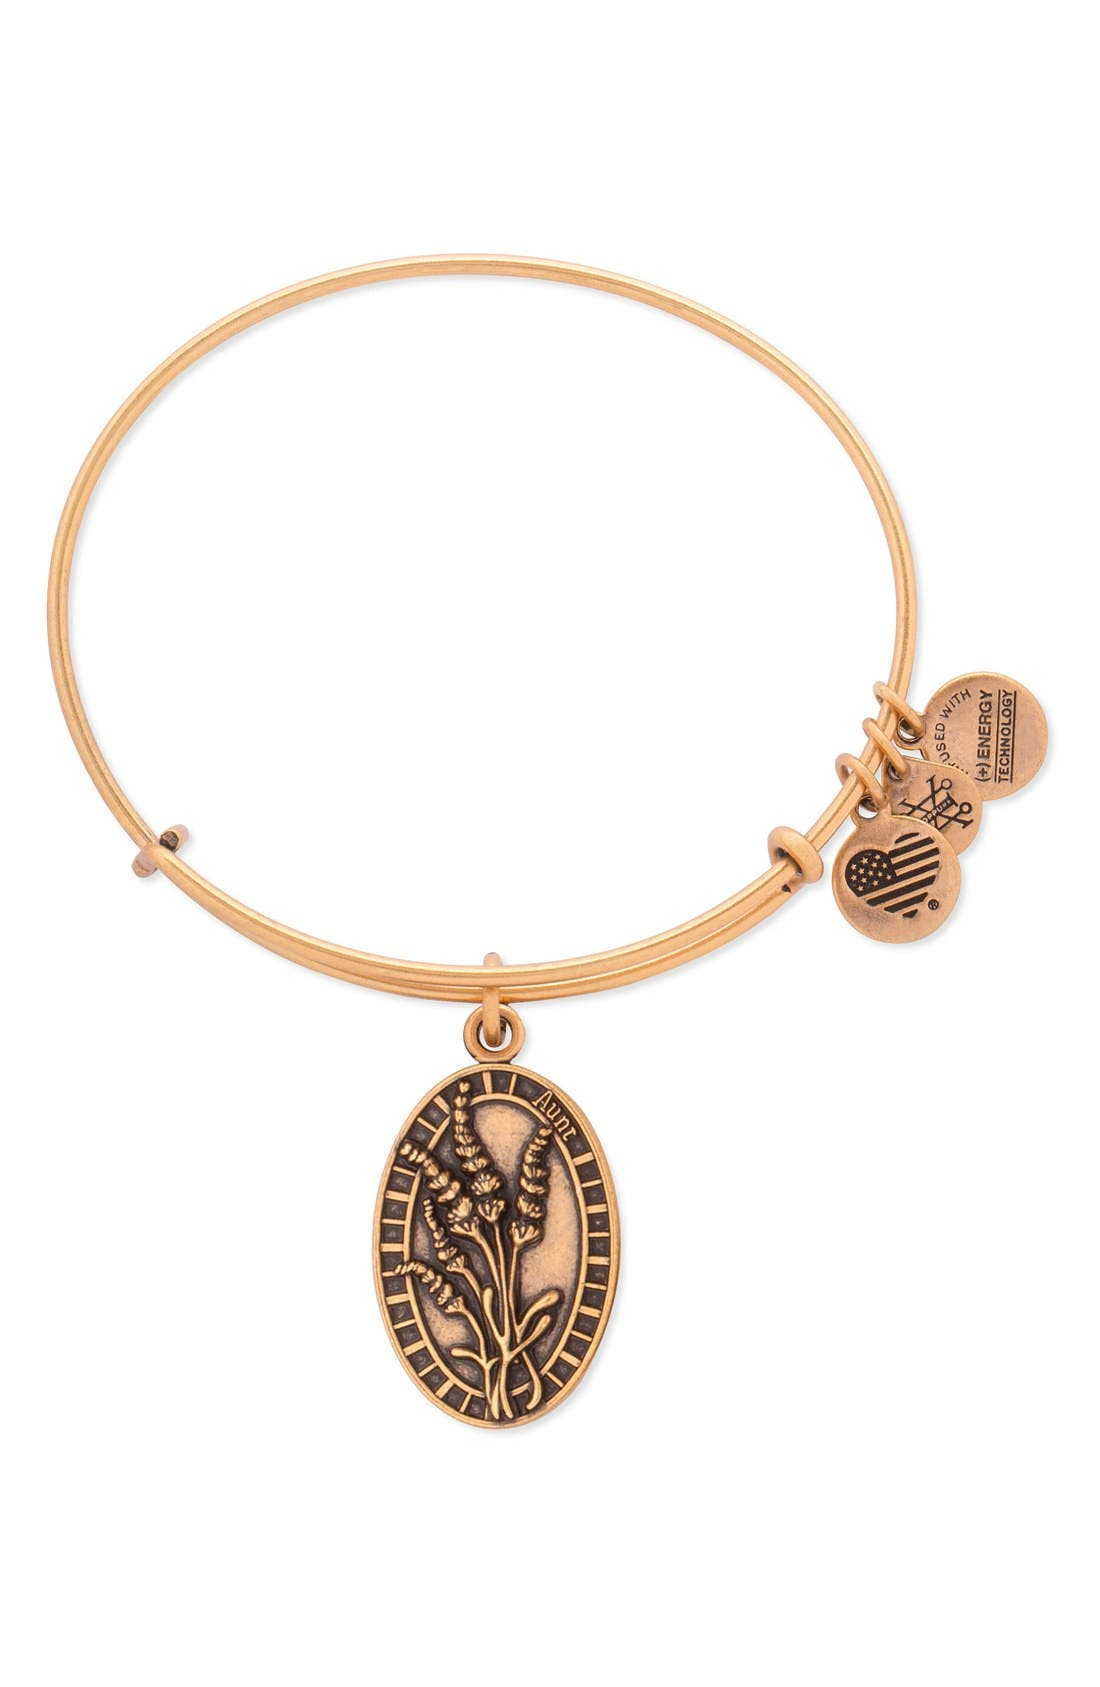 Alex and Ani 'Aunt' Adjustable Wire Bangle